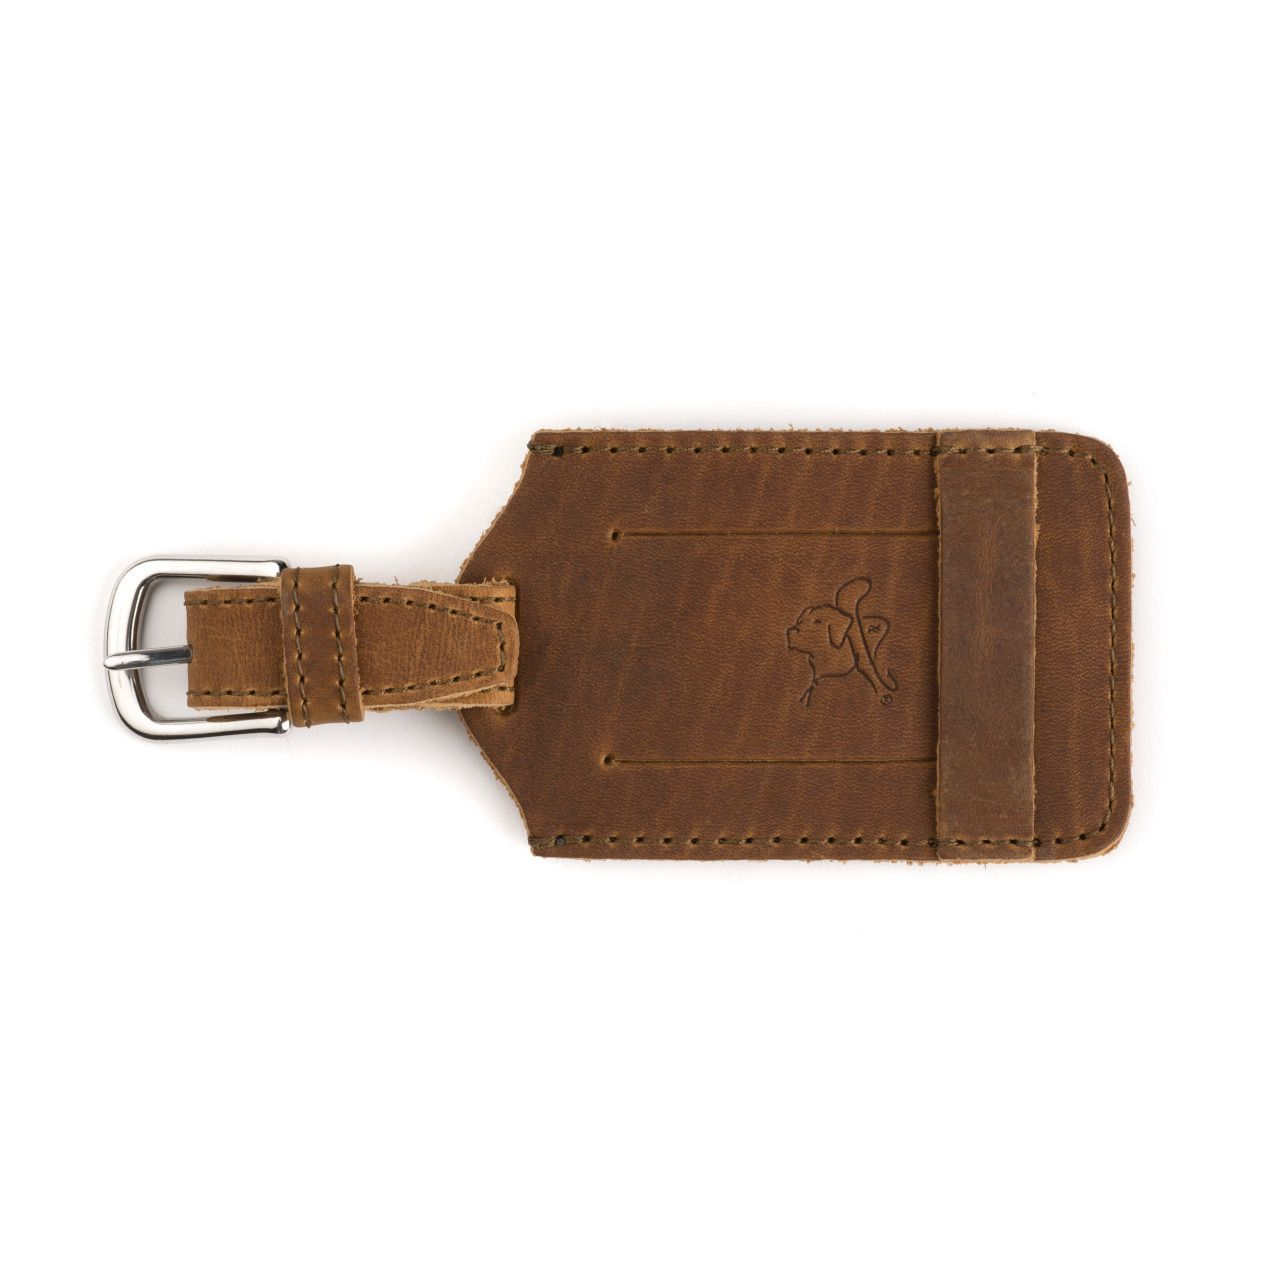 leather luggage tag in tobacco leather